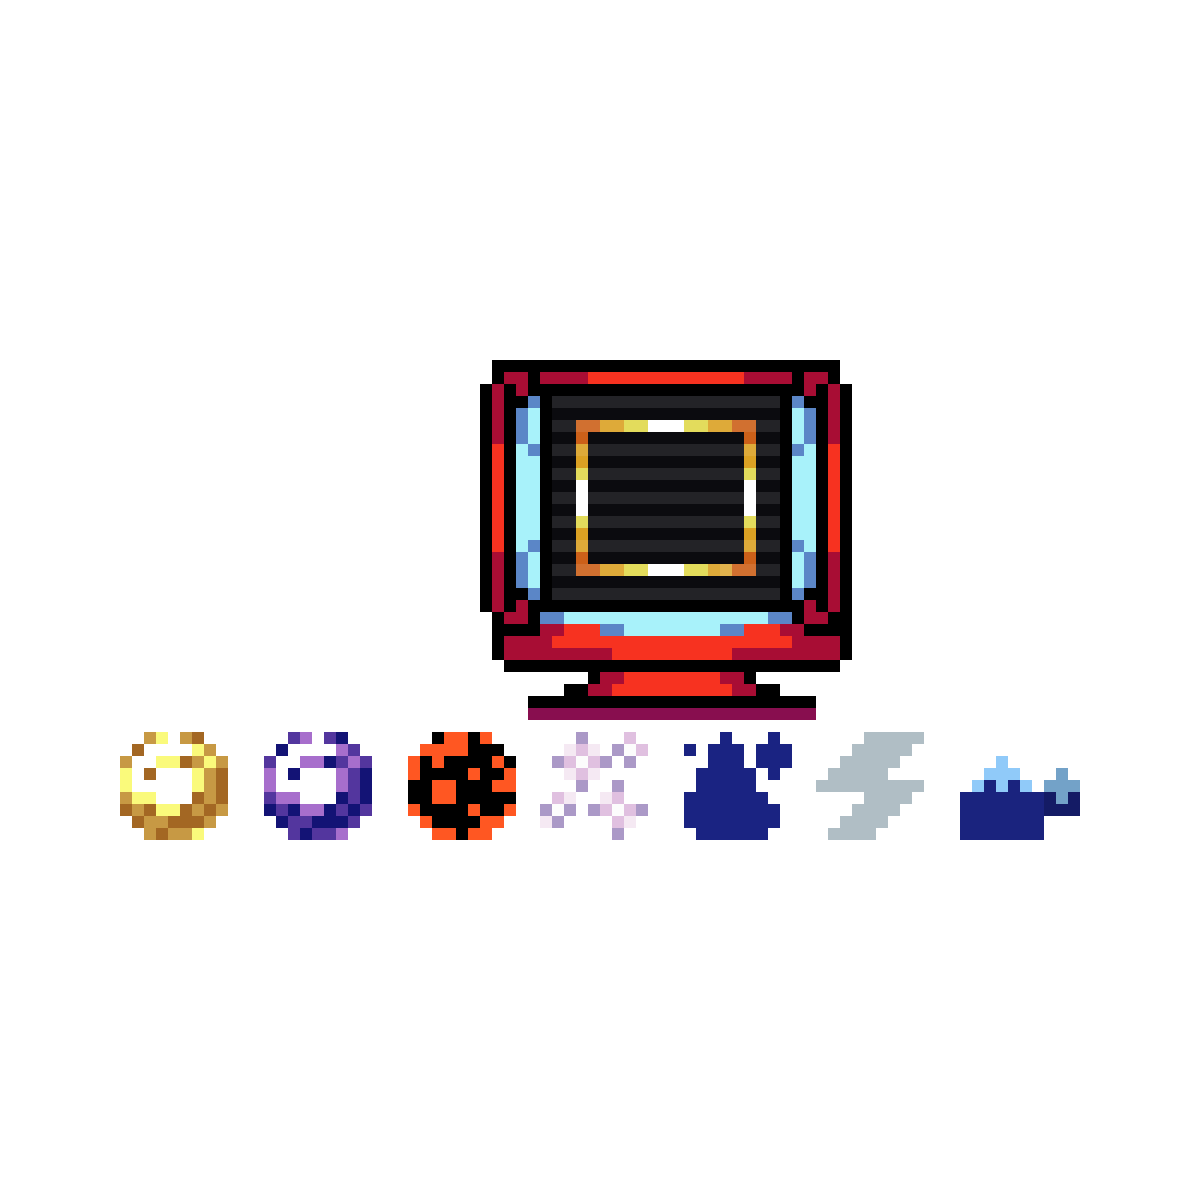 Blacker's Junk pile of  sprites/pixel art B4f0b56bb7536b8